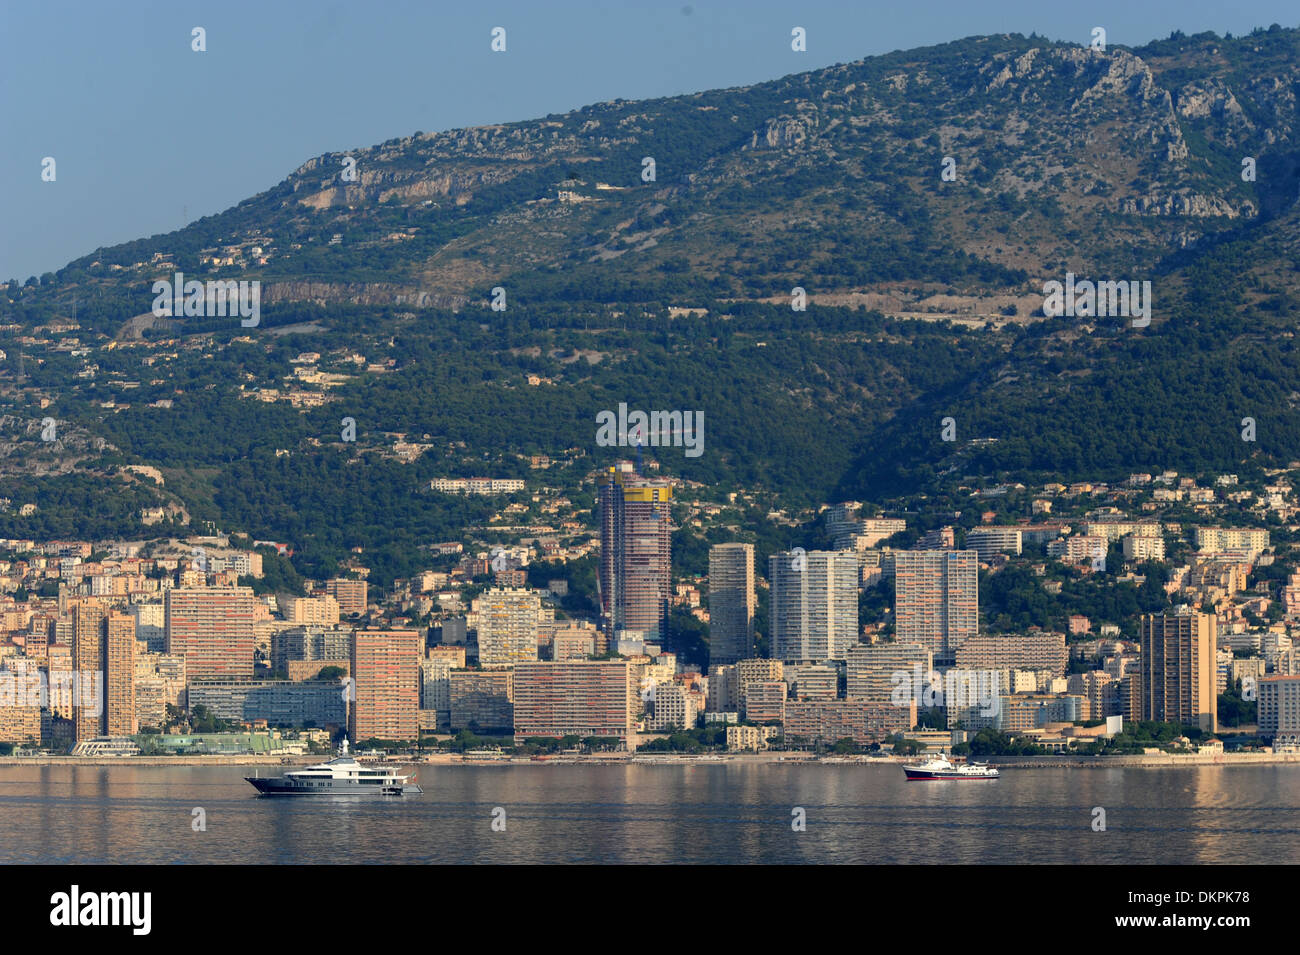 Monte Carlo, Monaco, seen from a cruise ship approaching Port Hercule - Stock Image